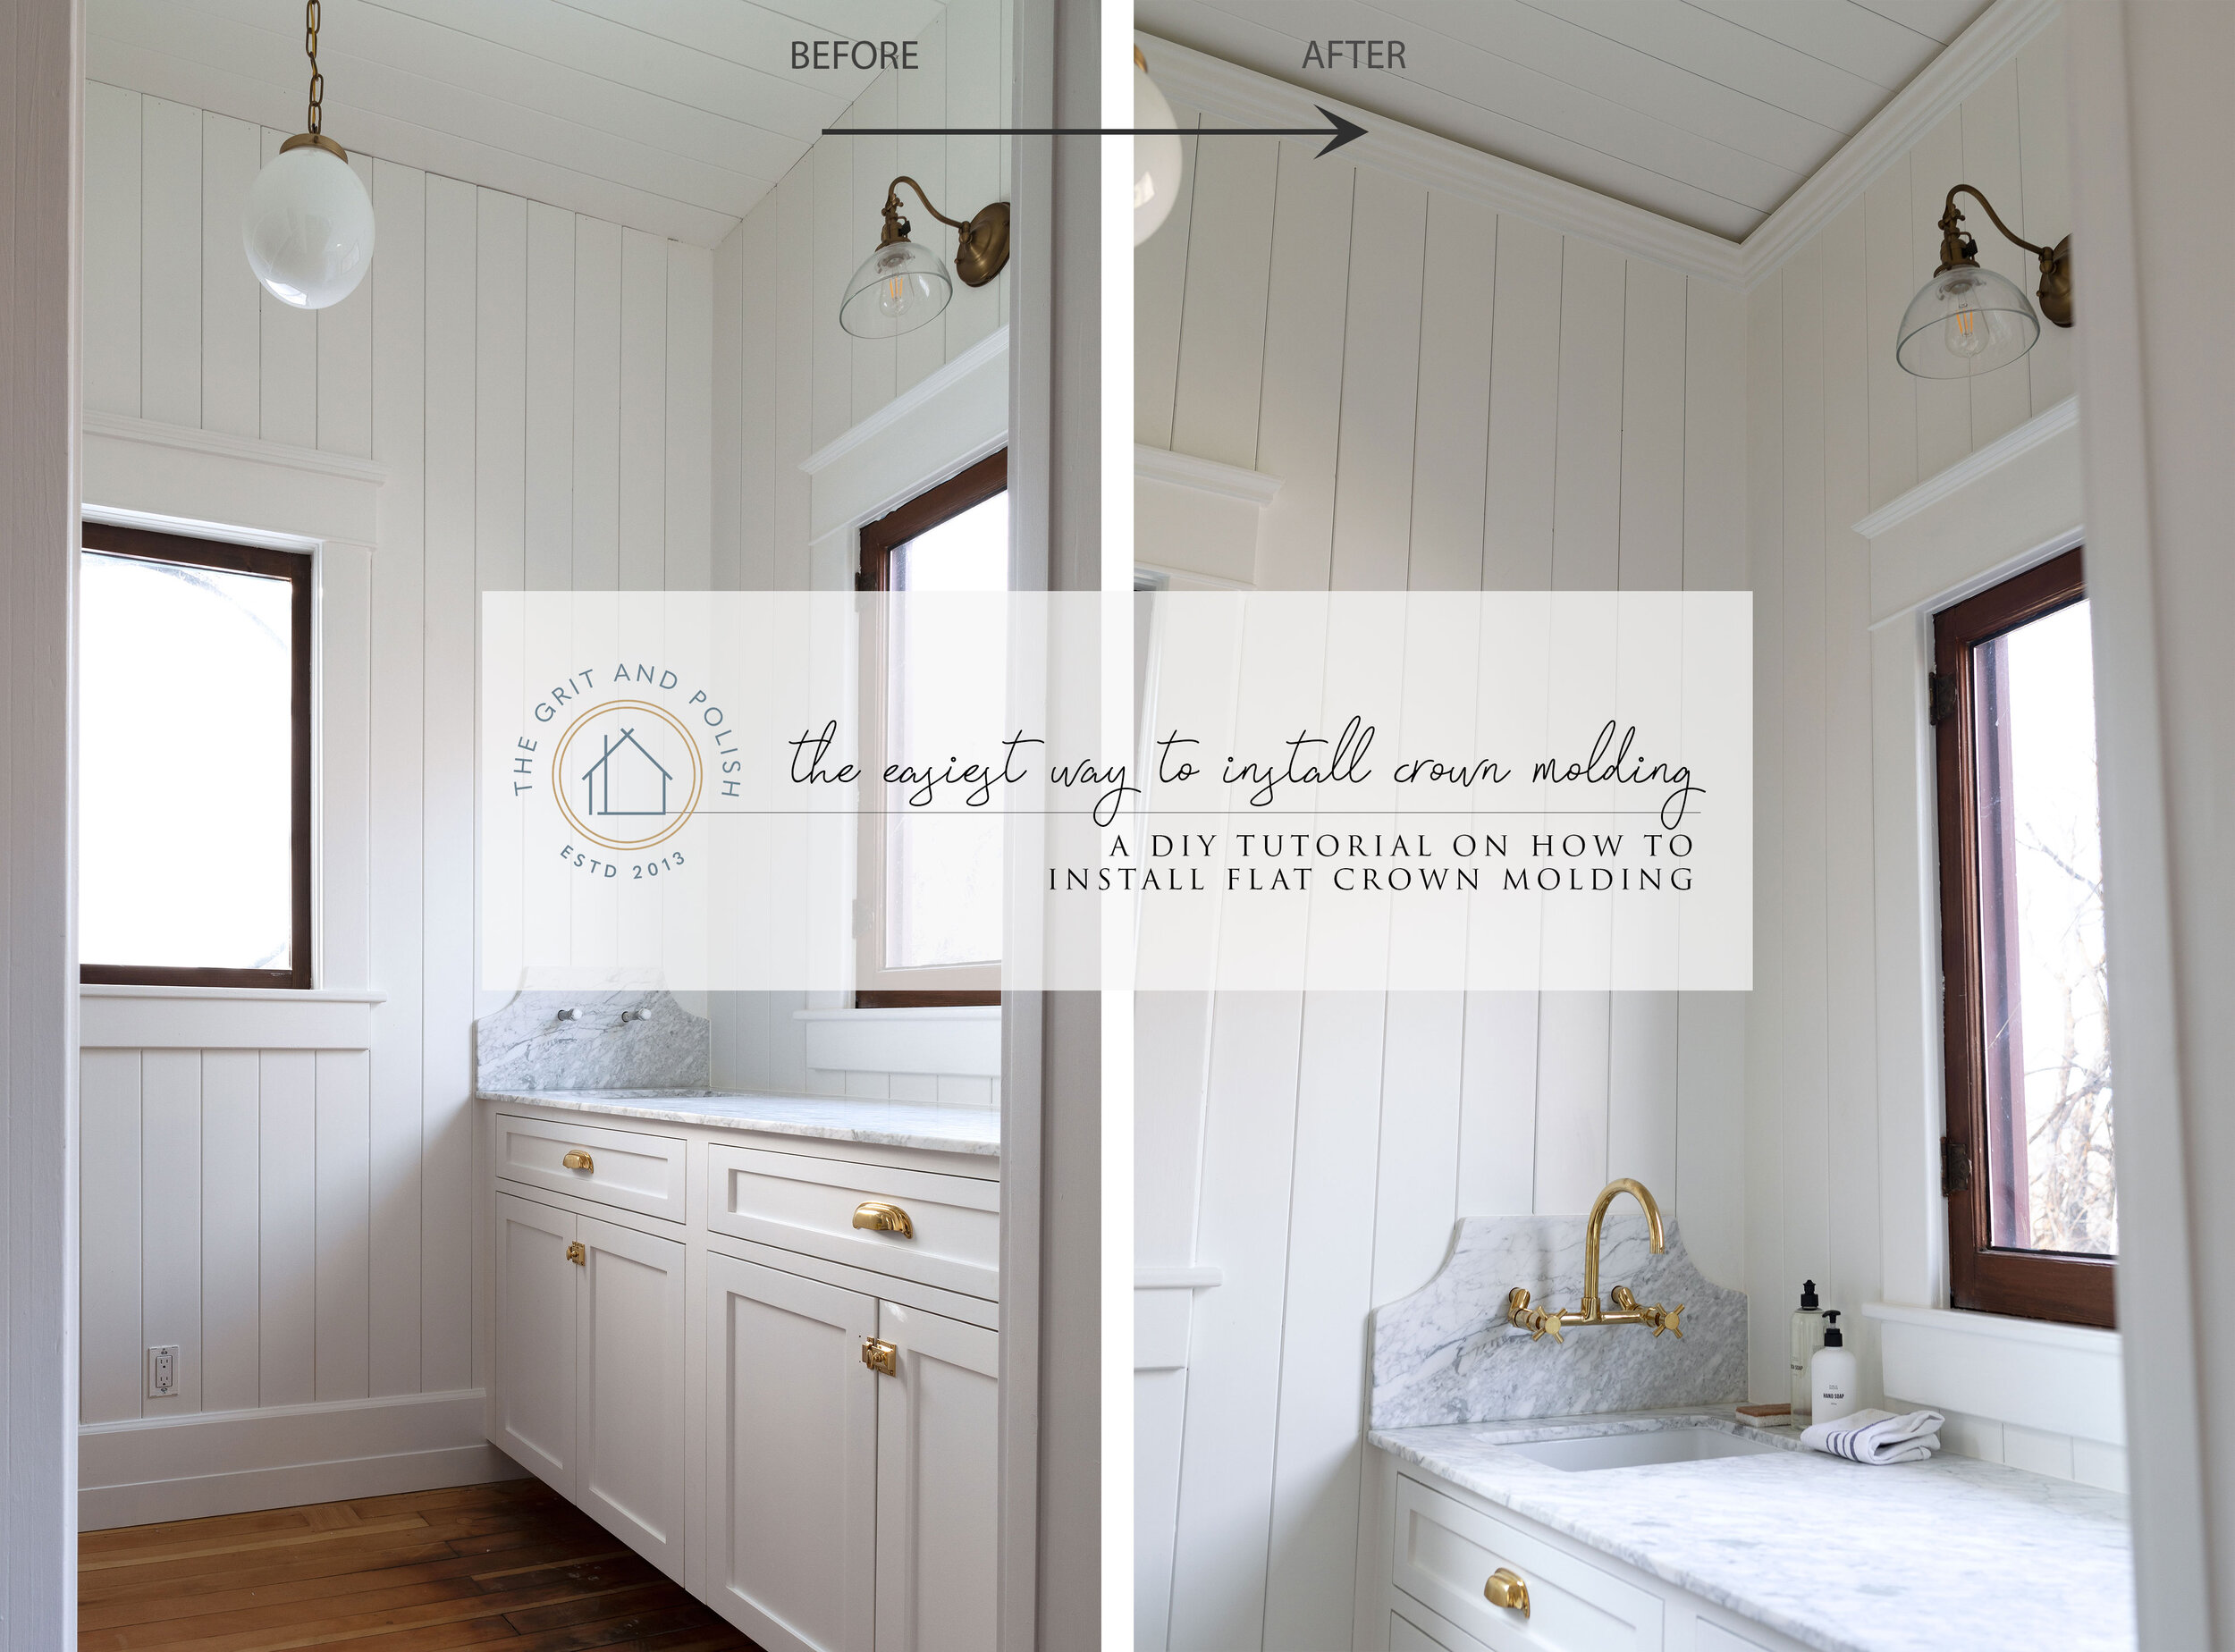 Diy The Easiest Way To Install Crown Molding Ever The Grit And Polish